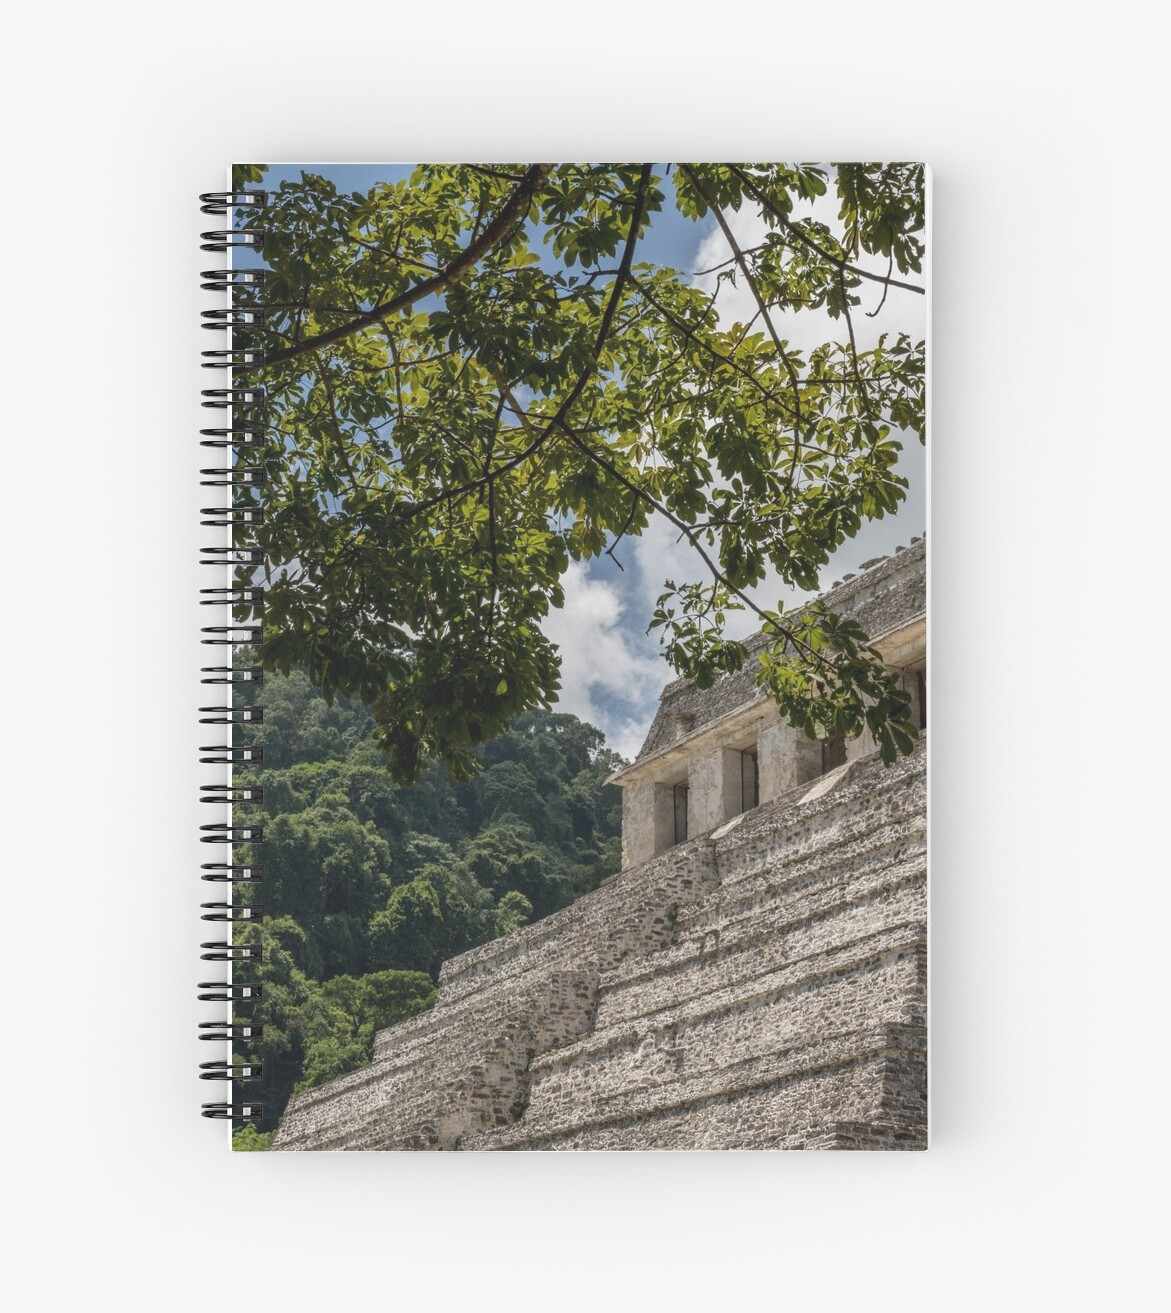 Palenque by beautifulplaces